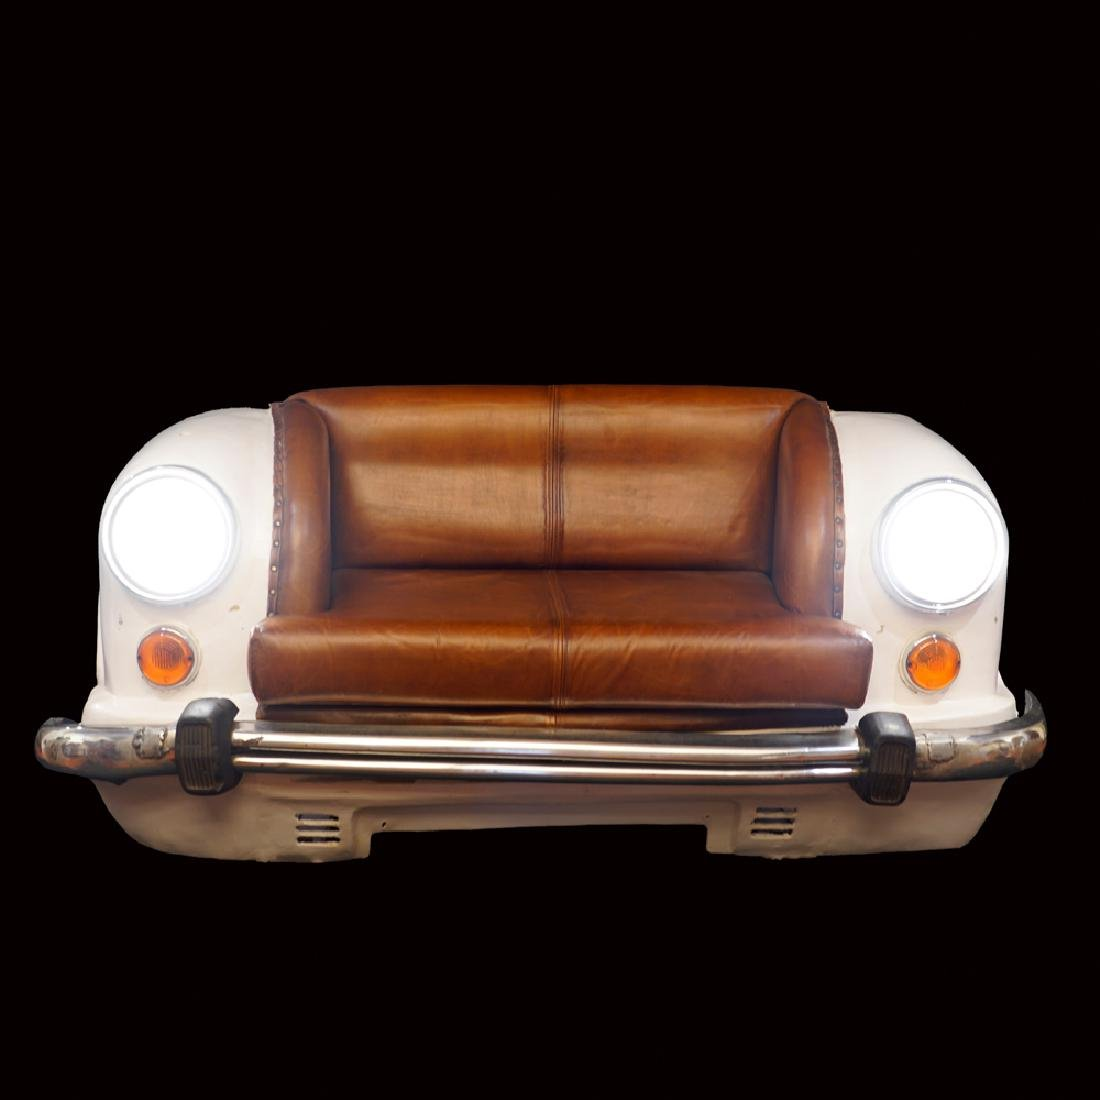 Fiat 850 sofa 20th century 75x150x80 cm. - 2